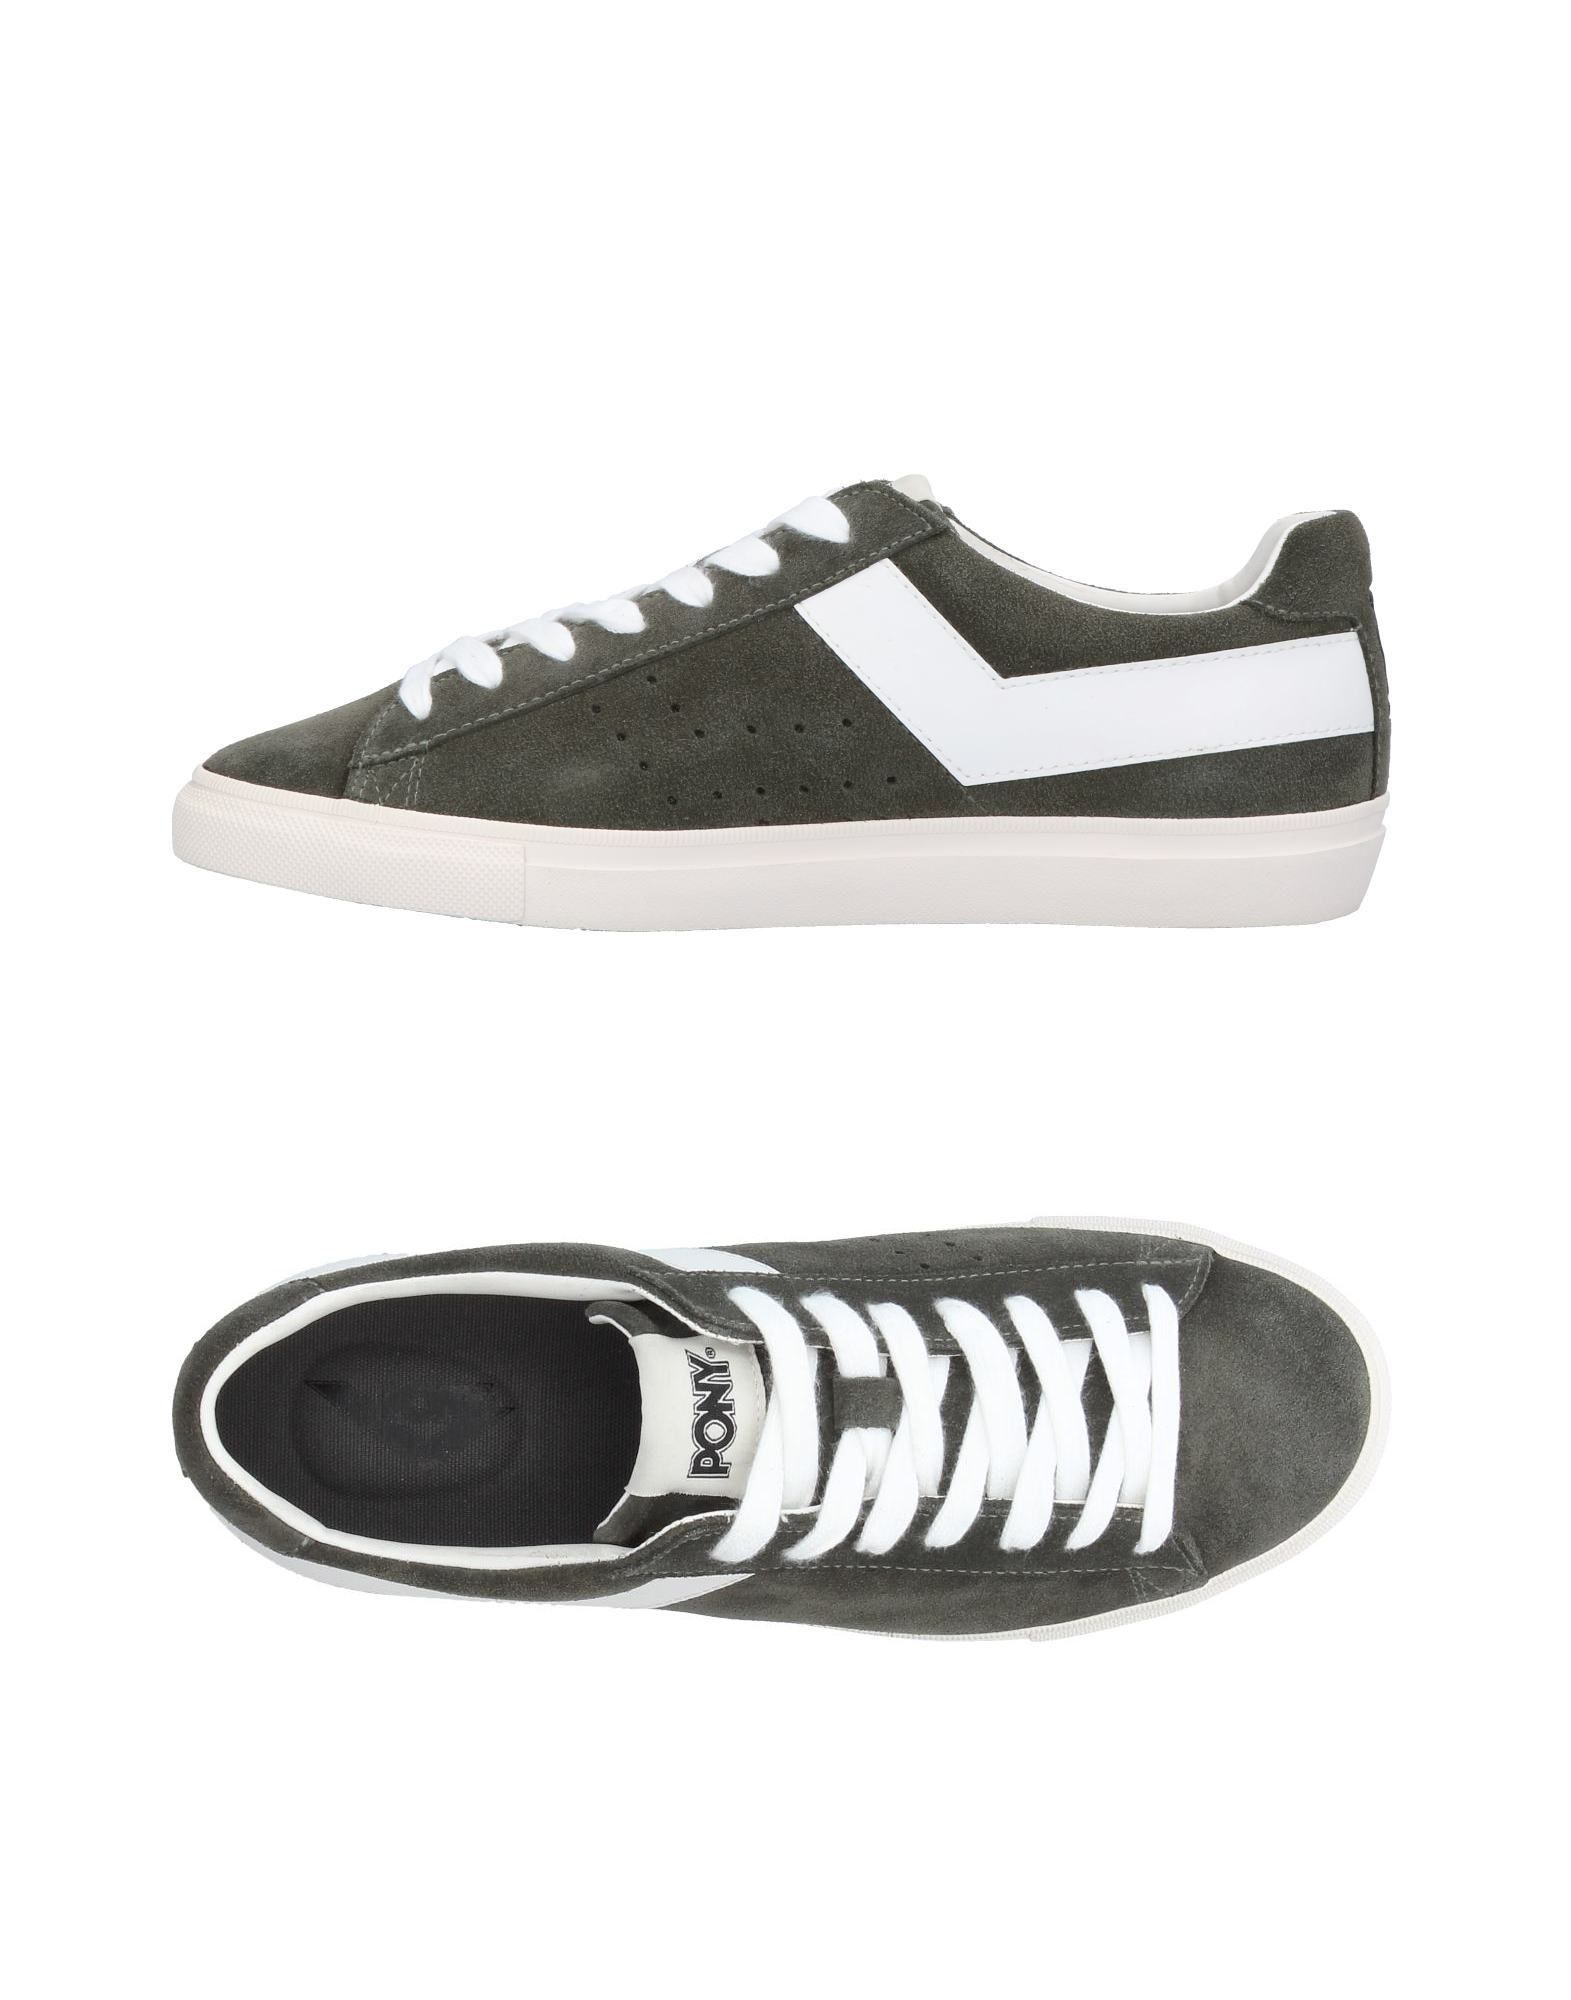 Sneakers In Military Green (With images